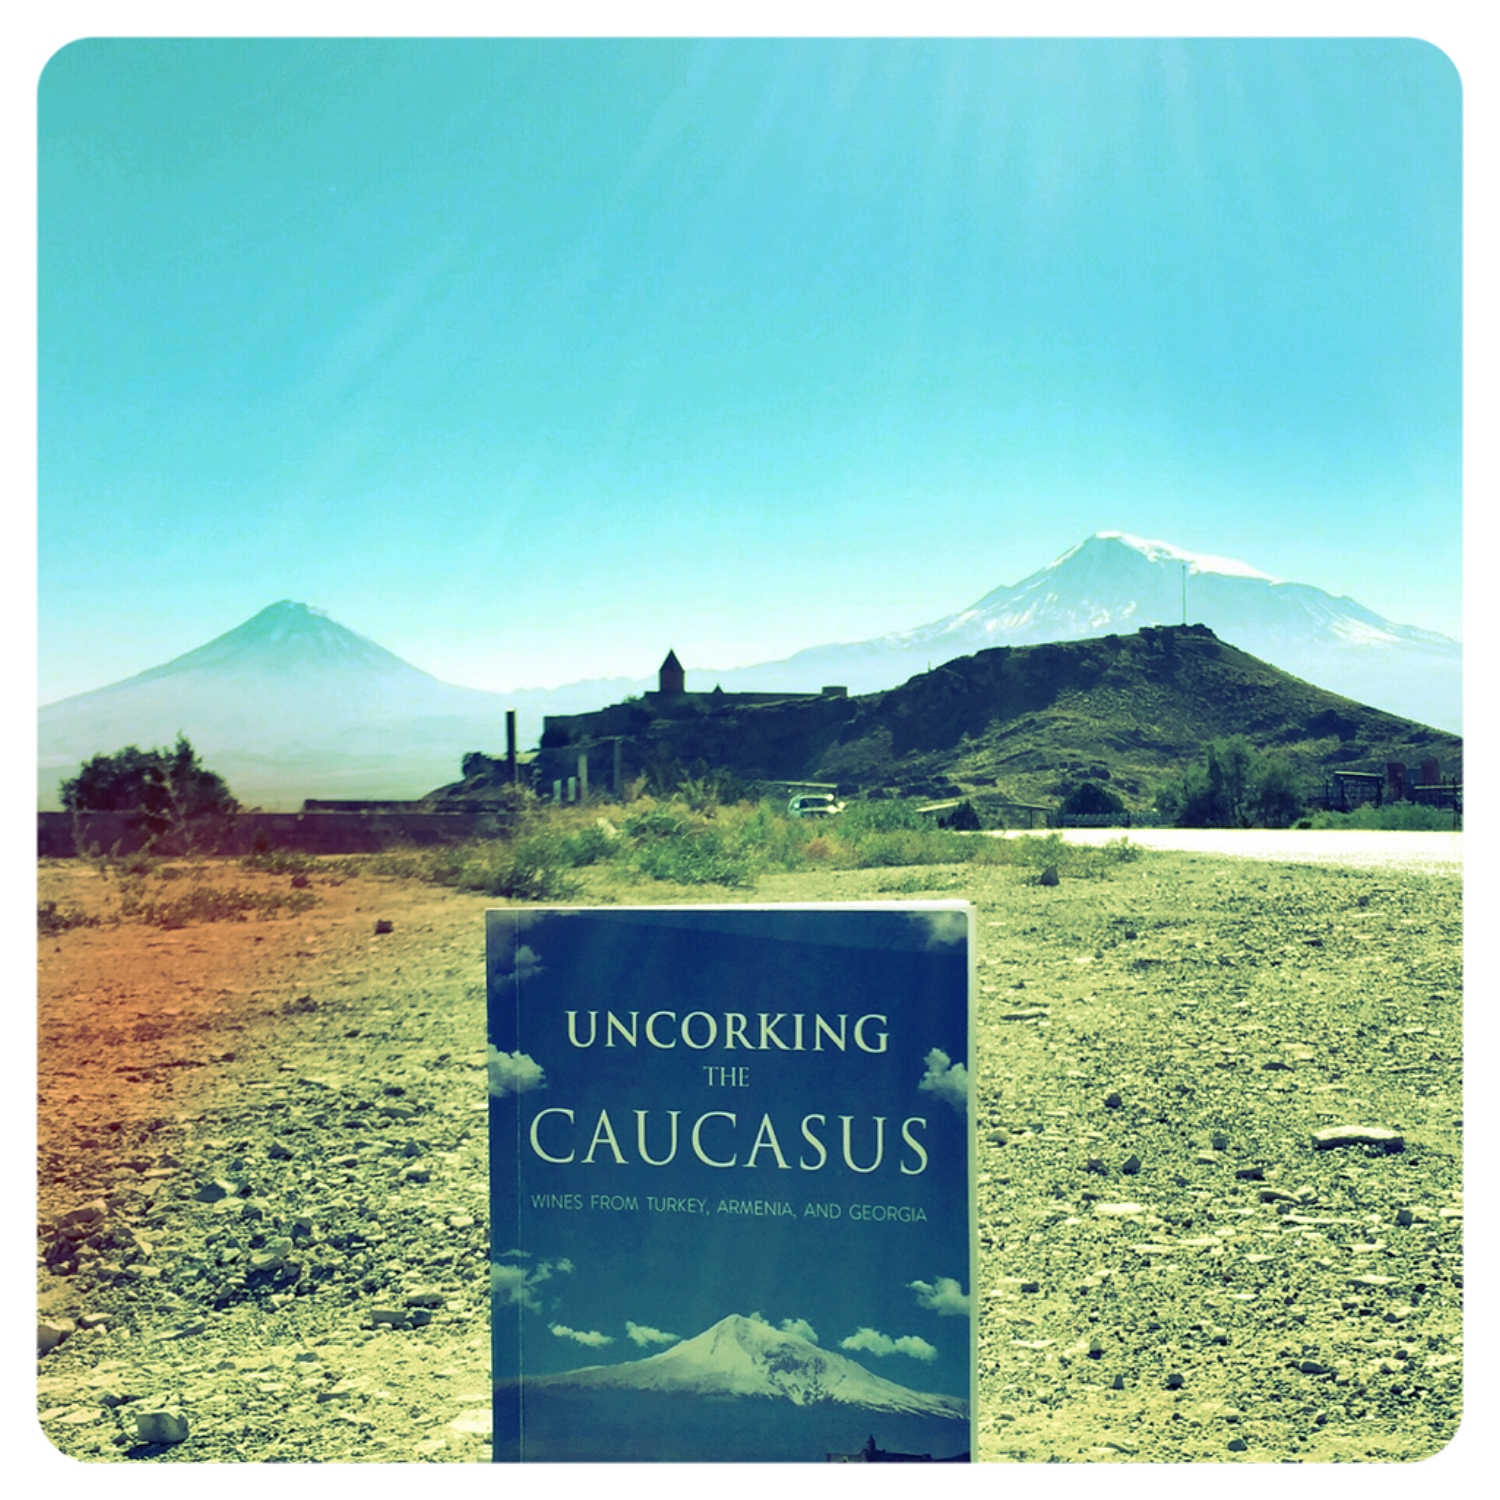 When 2D Mount Ararat meets its 3D counterpart We brounght our book Uncorking the Caucasus back to one of its birthplaces Armenia.JPG